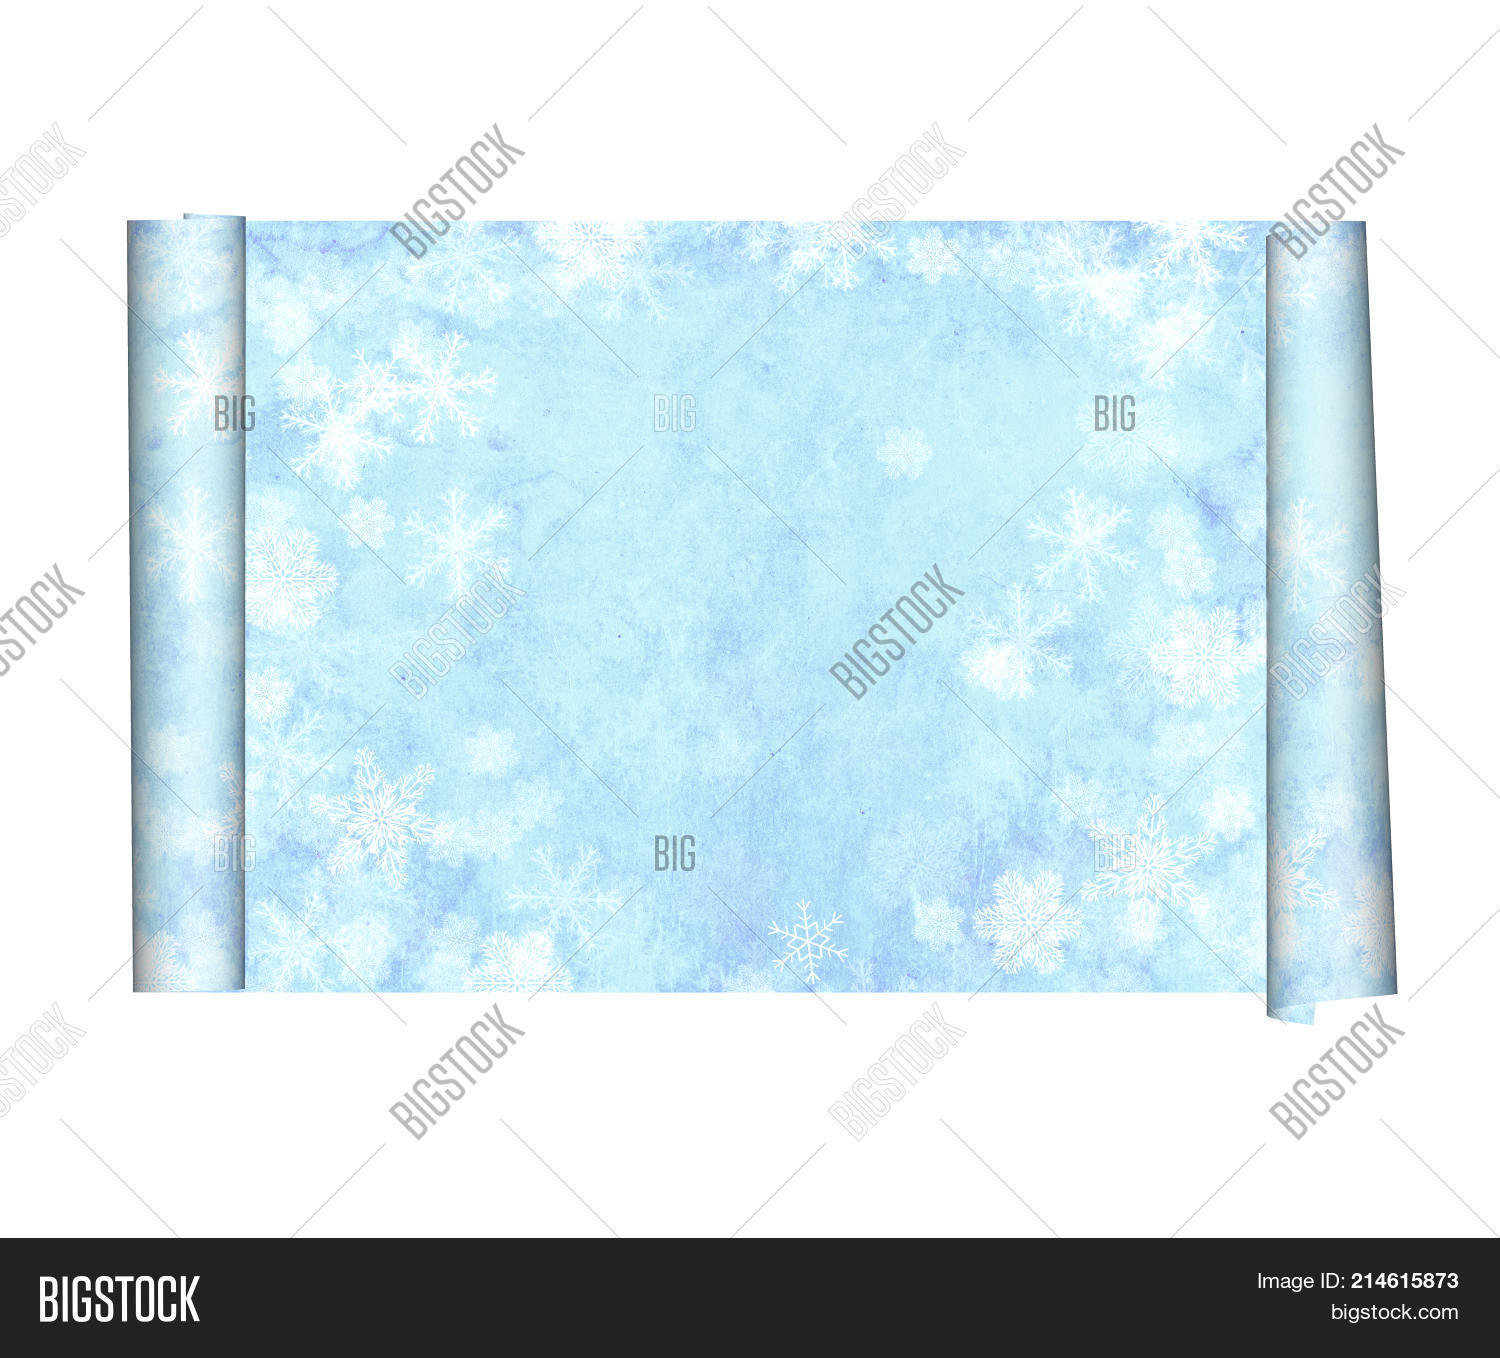 old parchment paper image photo free trial bigstock